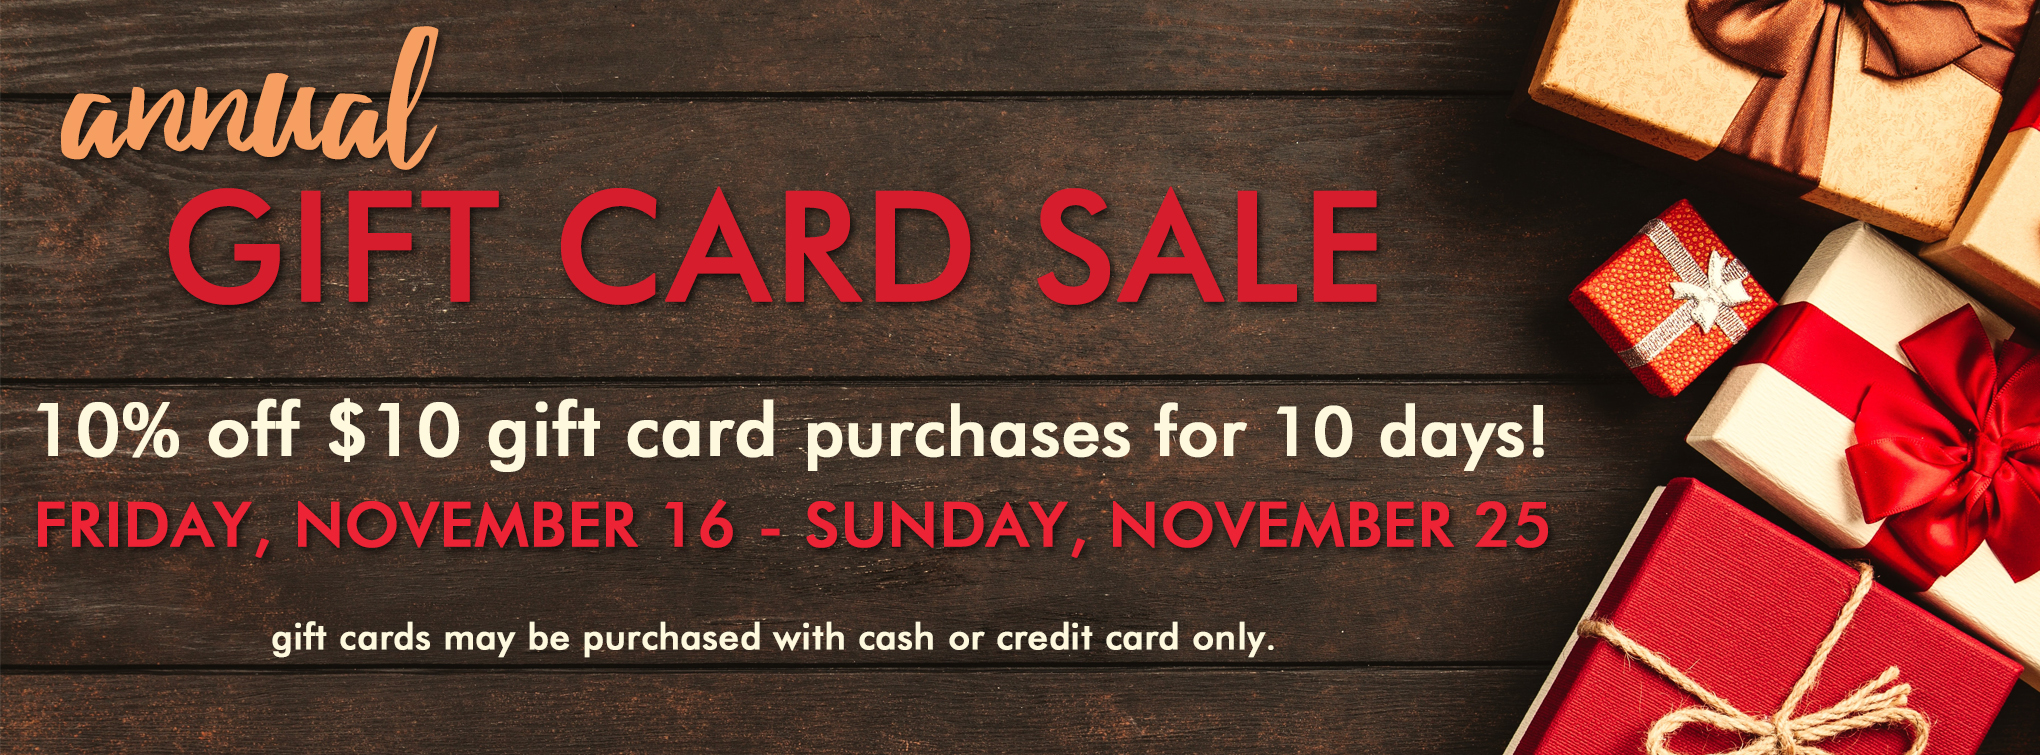 Slider image for our Annual Gift Card Sale - 10% off $10 gift cards for 10 days - November 16-25